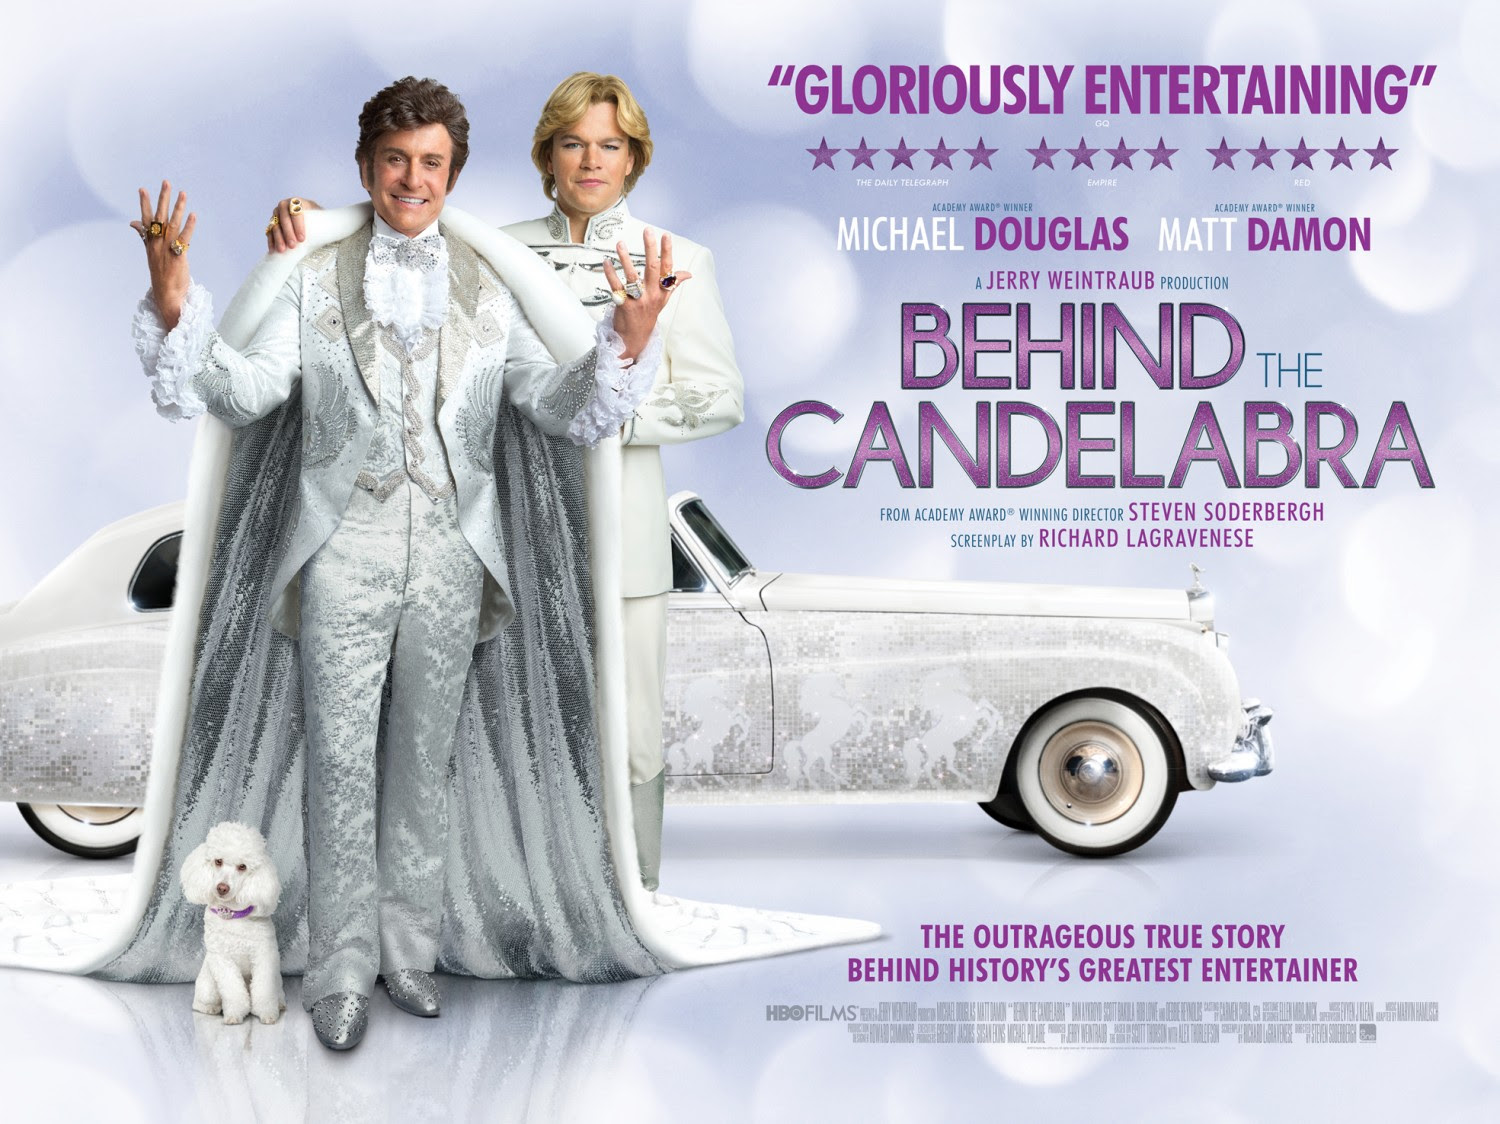 http://themovieblog.com/wp-content/uploads/2013/06/Behind-the-Candelabra-2013.jpg